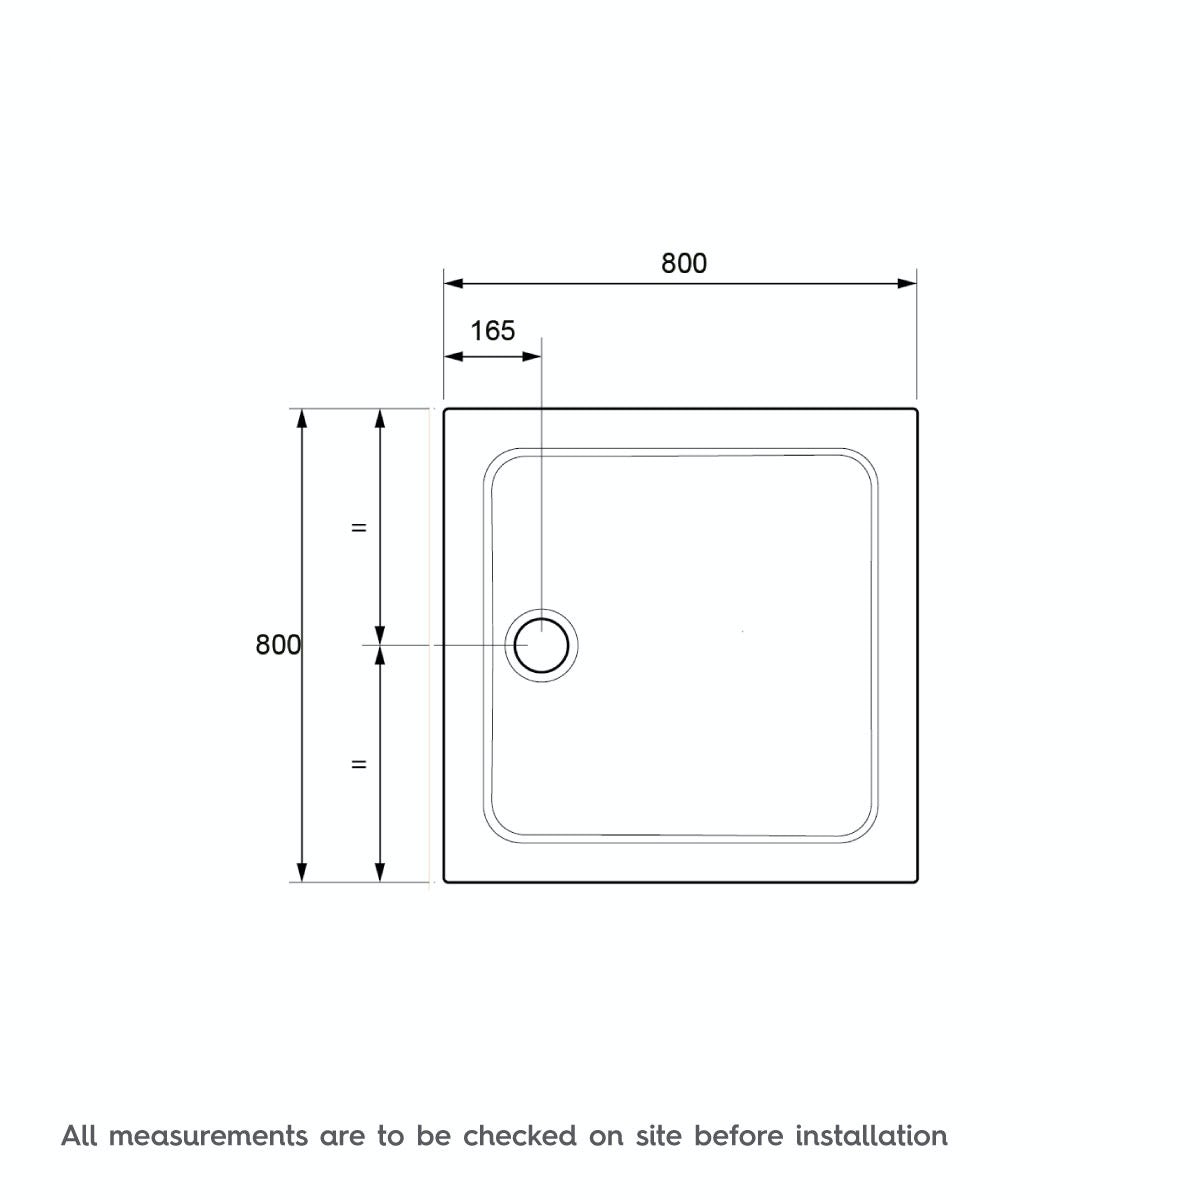 Dimensions for 800 x 800